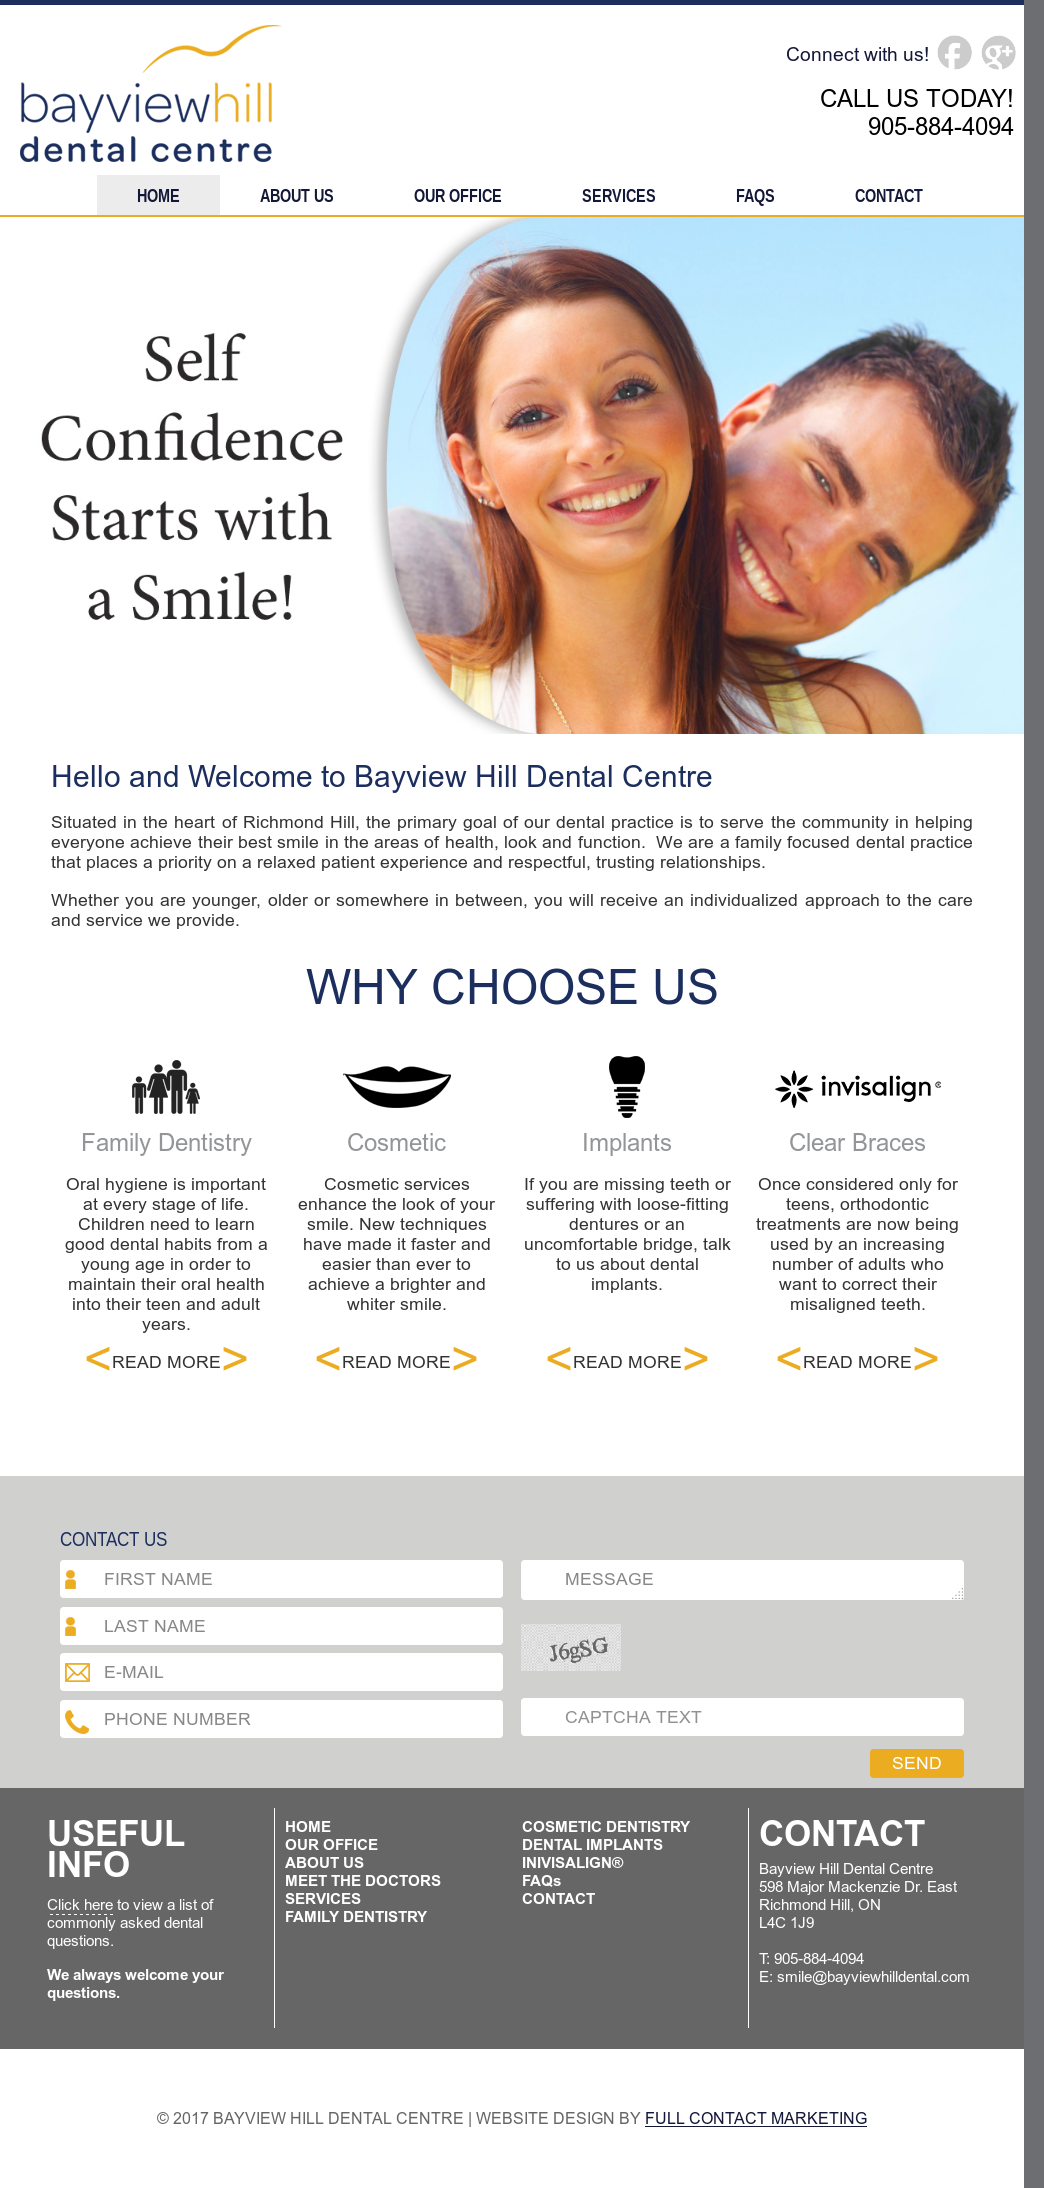 Bayview Hill Dental Centre Competitors, Revenue and